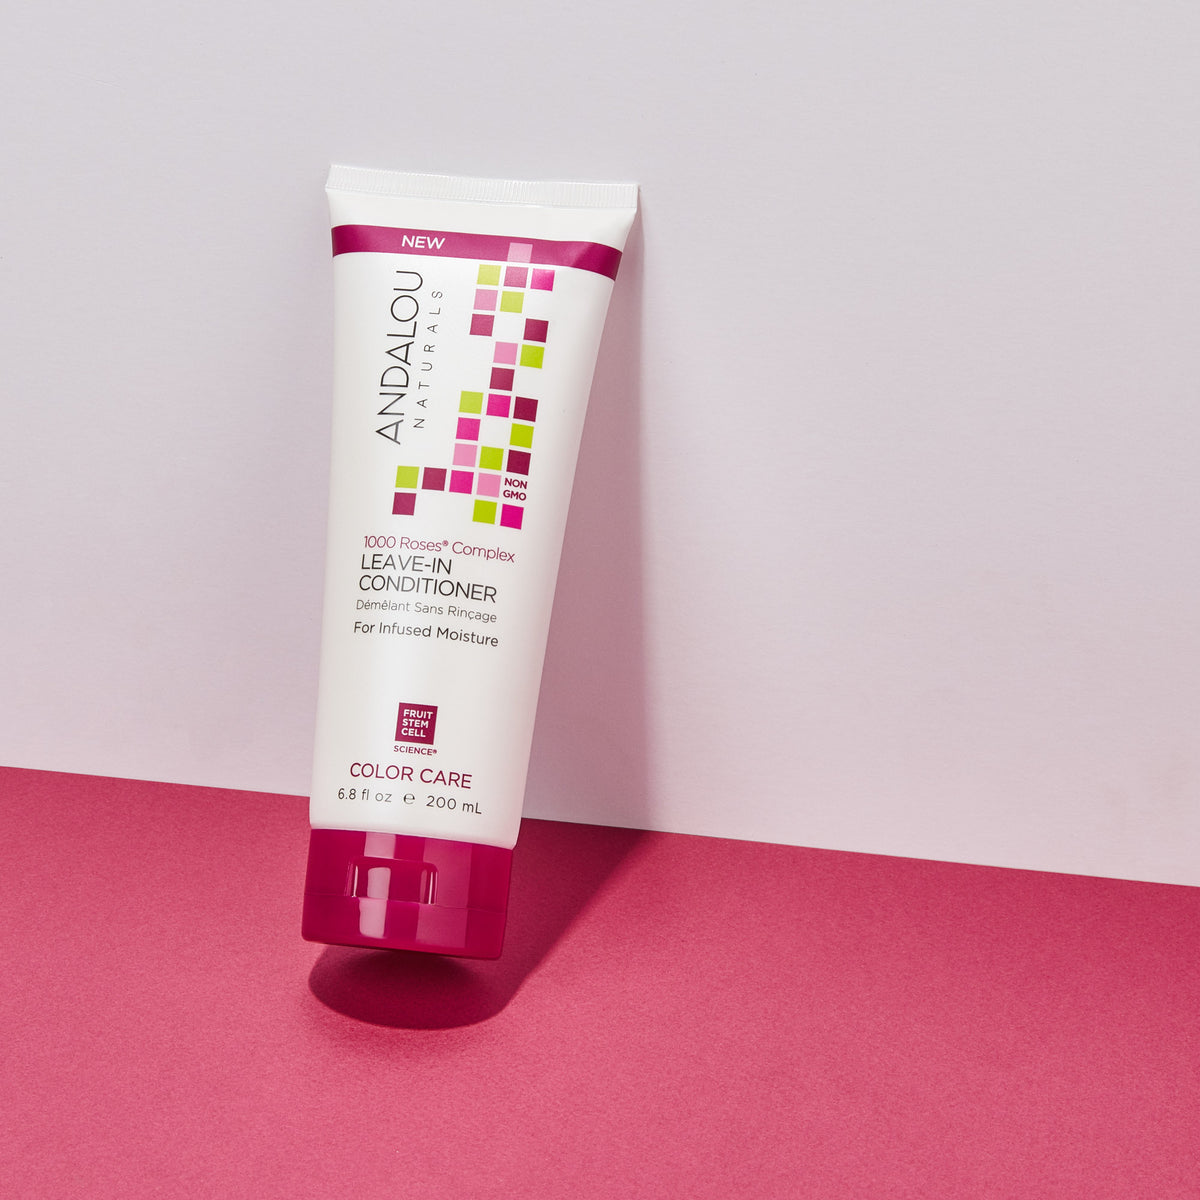 1000 Roses Complex Color Care Deep Conditioning Leave-In Conditioner - Andalou Naturals US